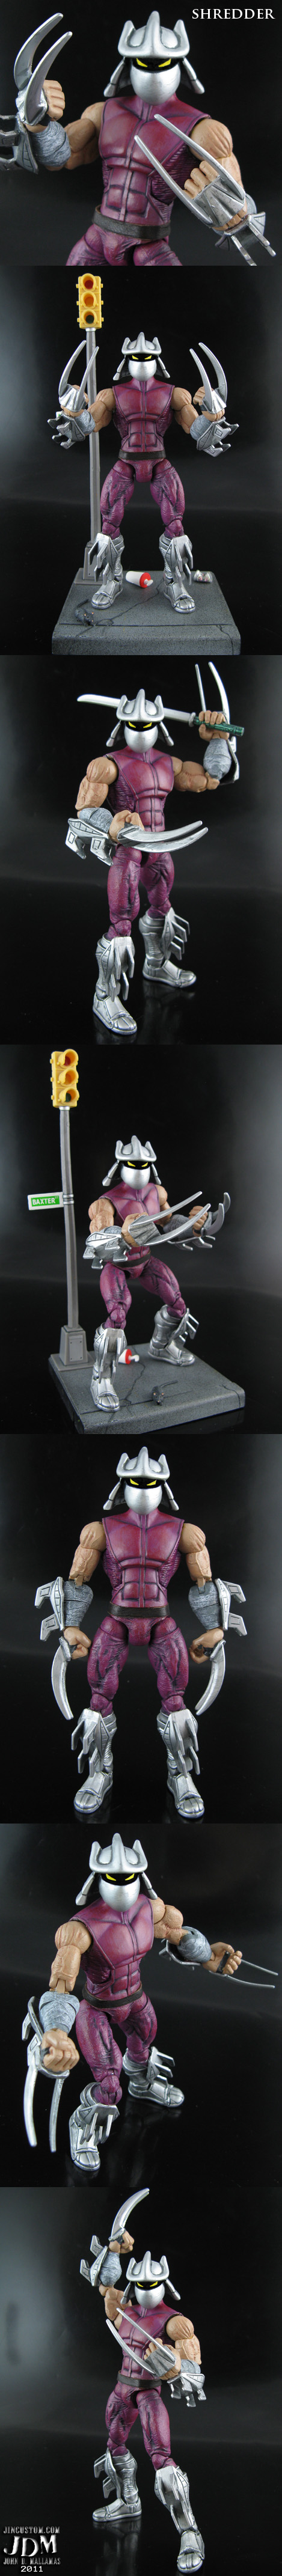 Custom Shredder TMNT